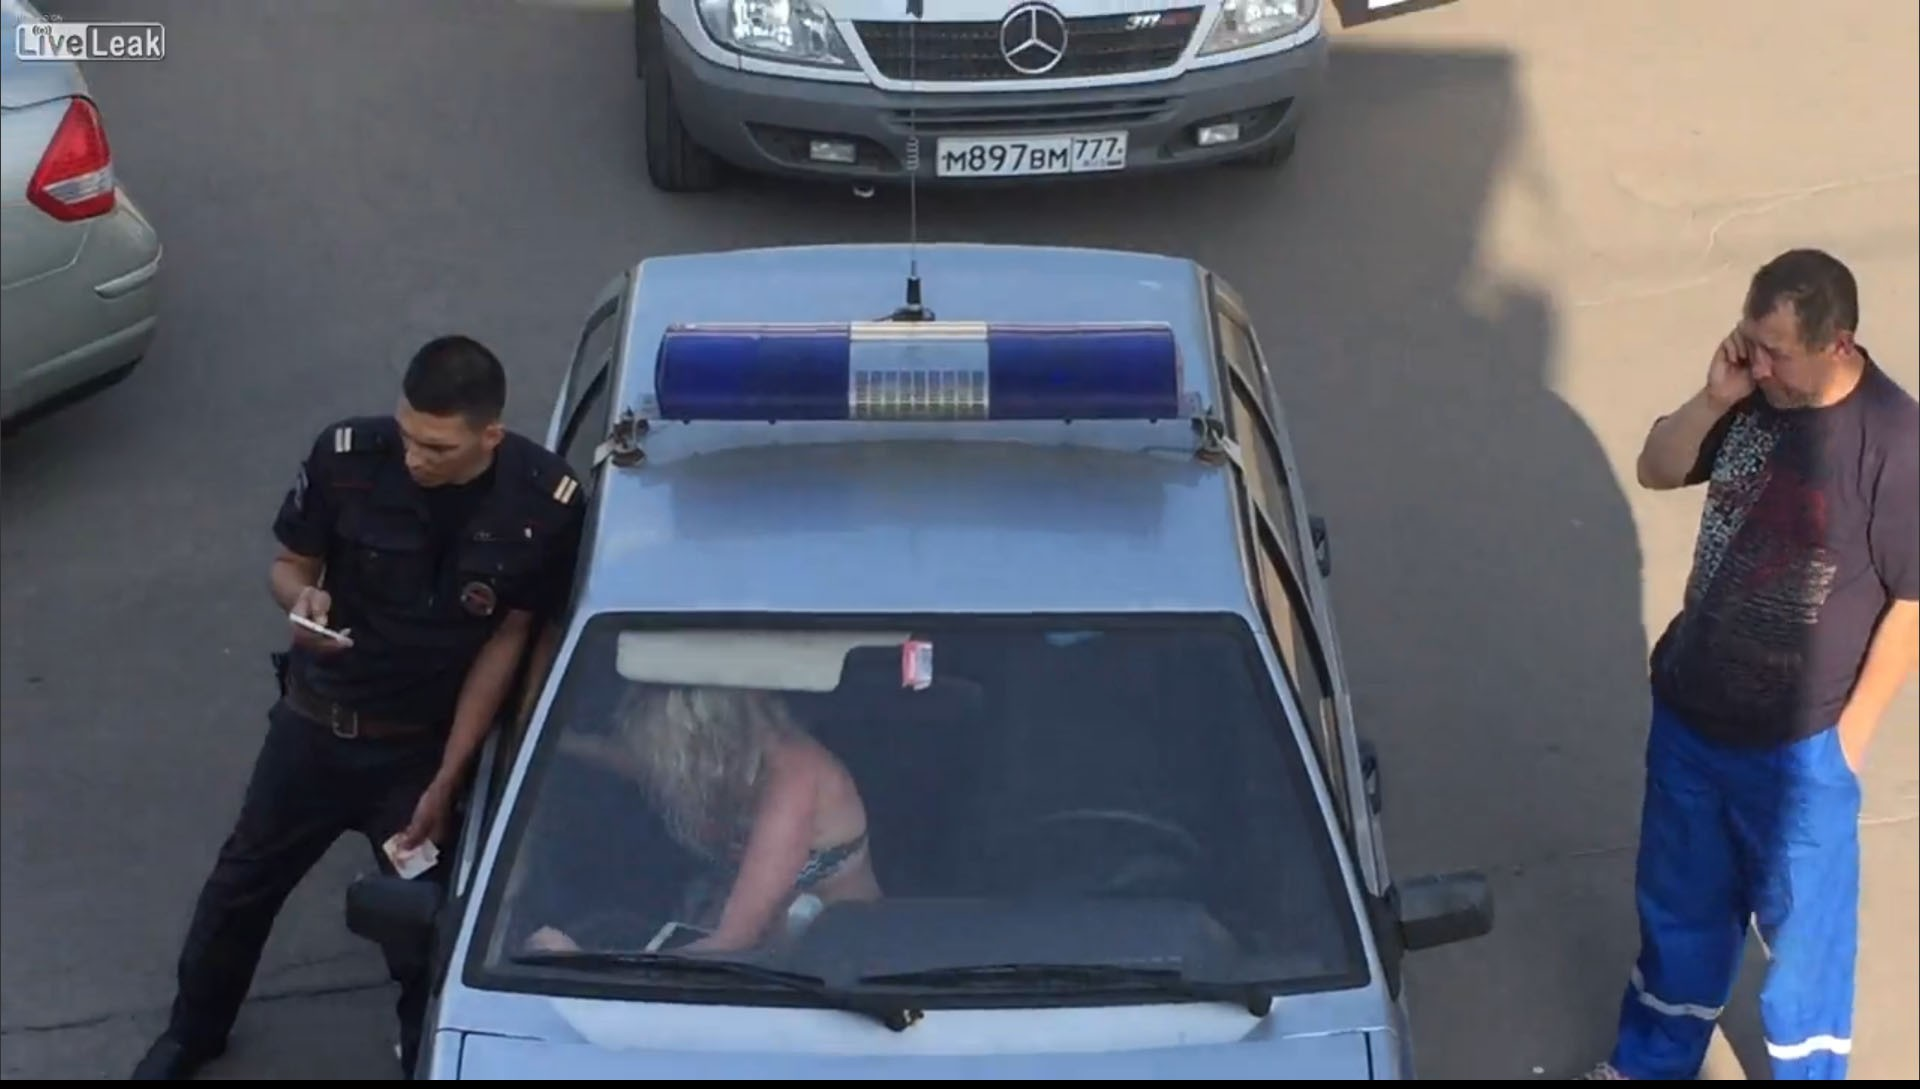 Drunk Blonde Ignores Police Officer Standing Next To Her